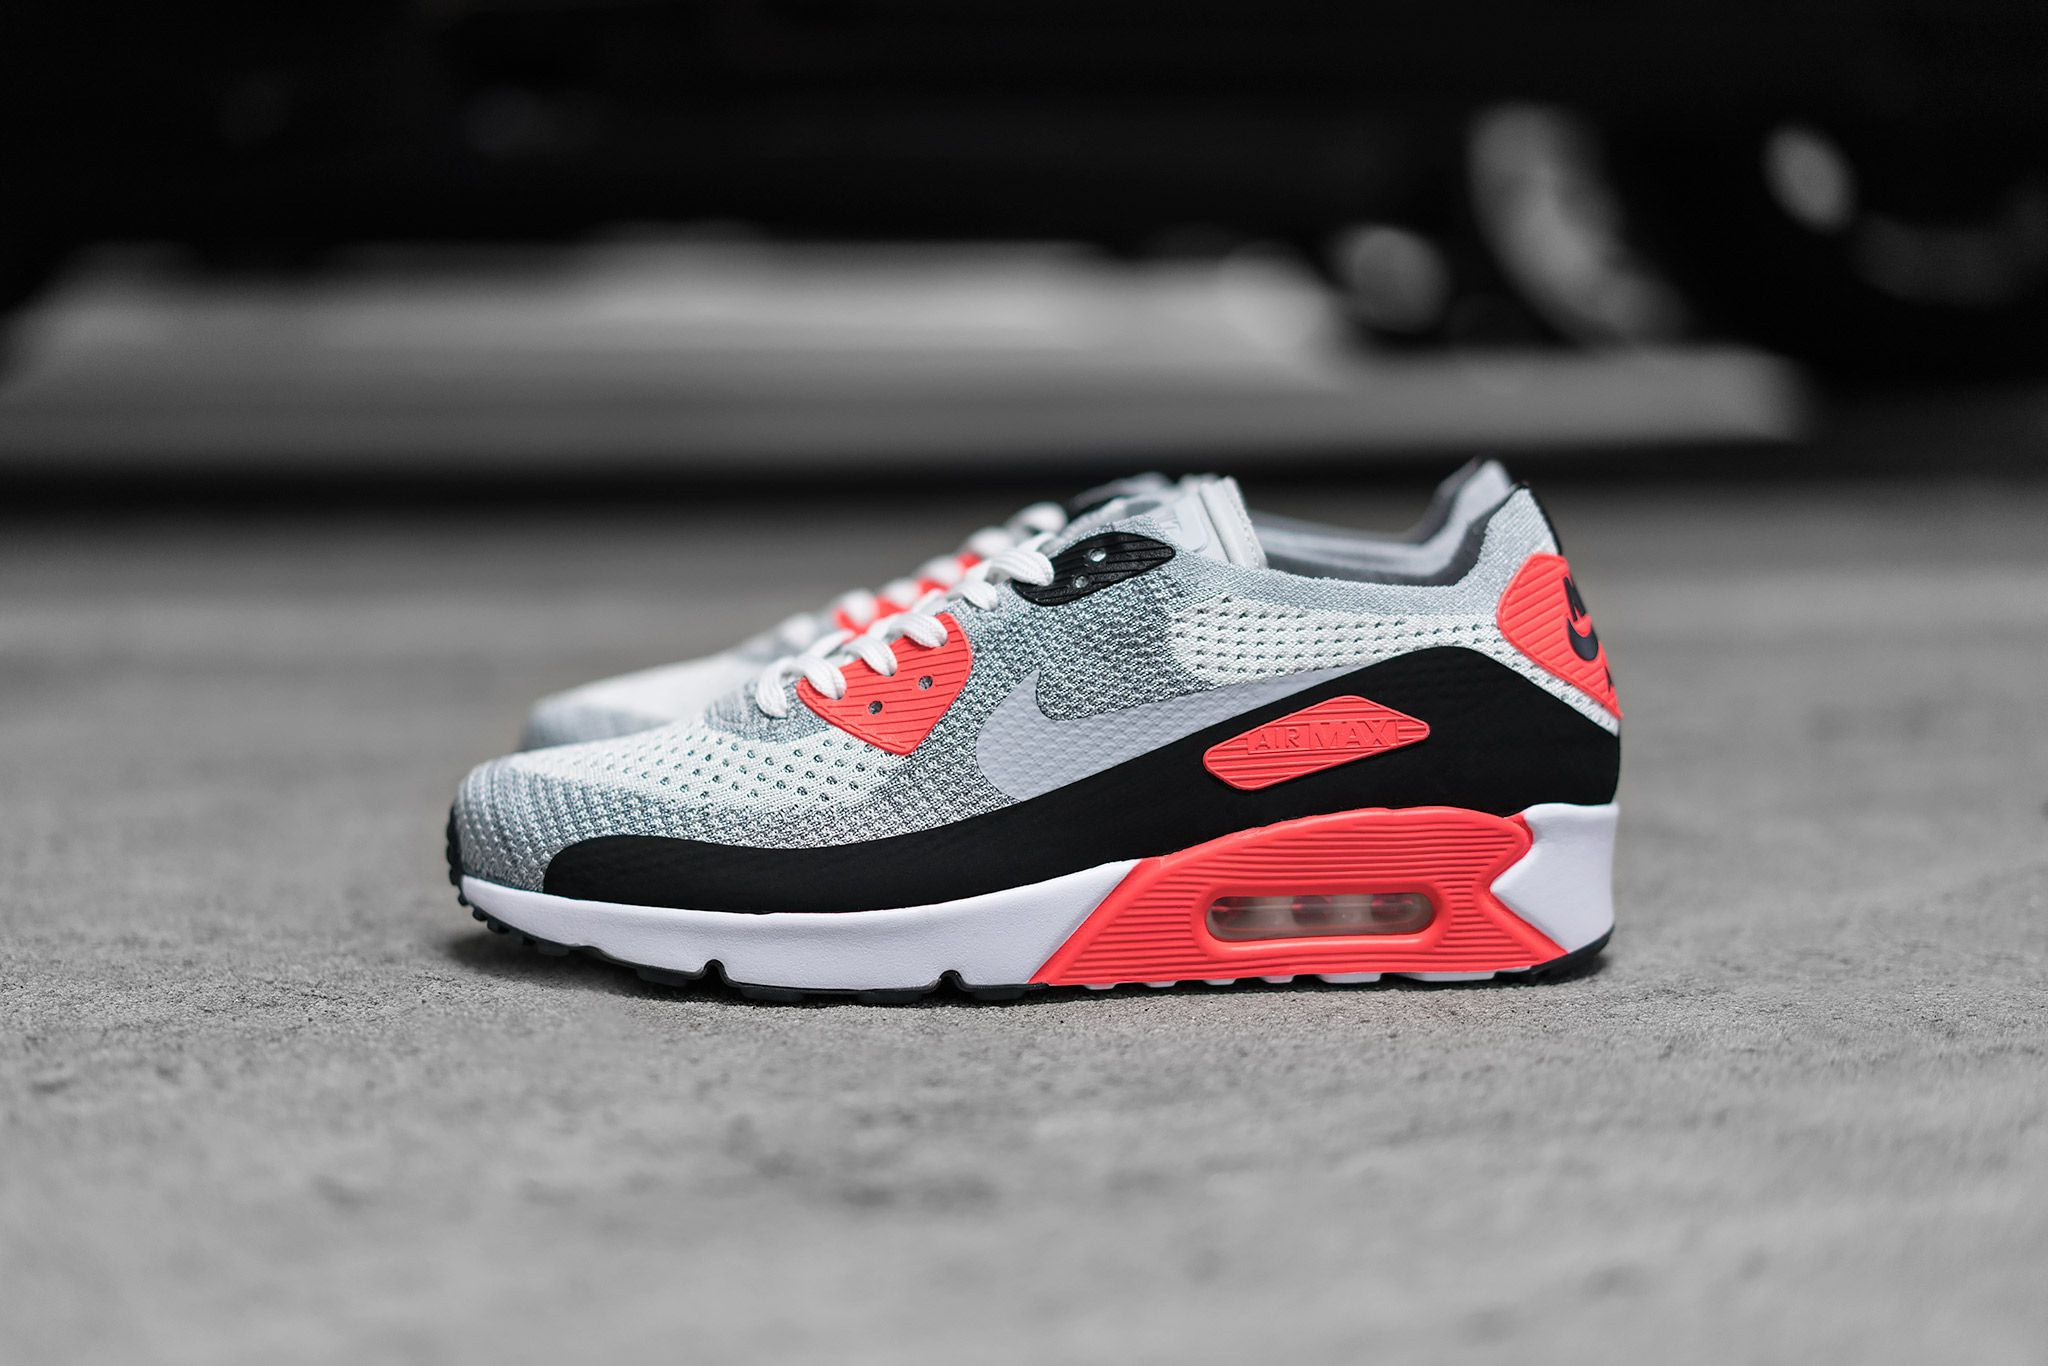 reputable site 3da2a ece51 Nike air Max 90 30th anniversary Nike Air Max 90 Ultra 2.0 Flyknit As part  of Nike s 30th anniversary of ...